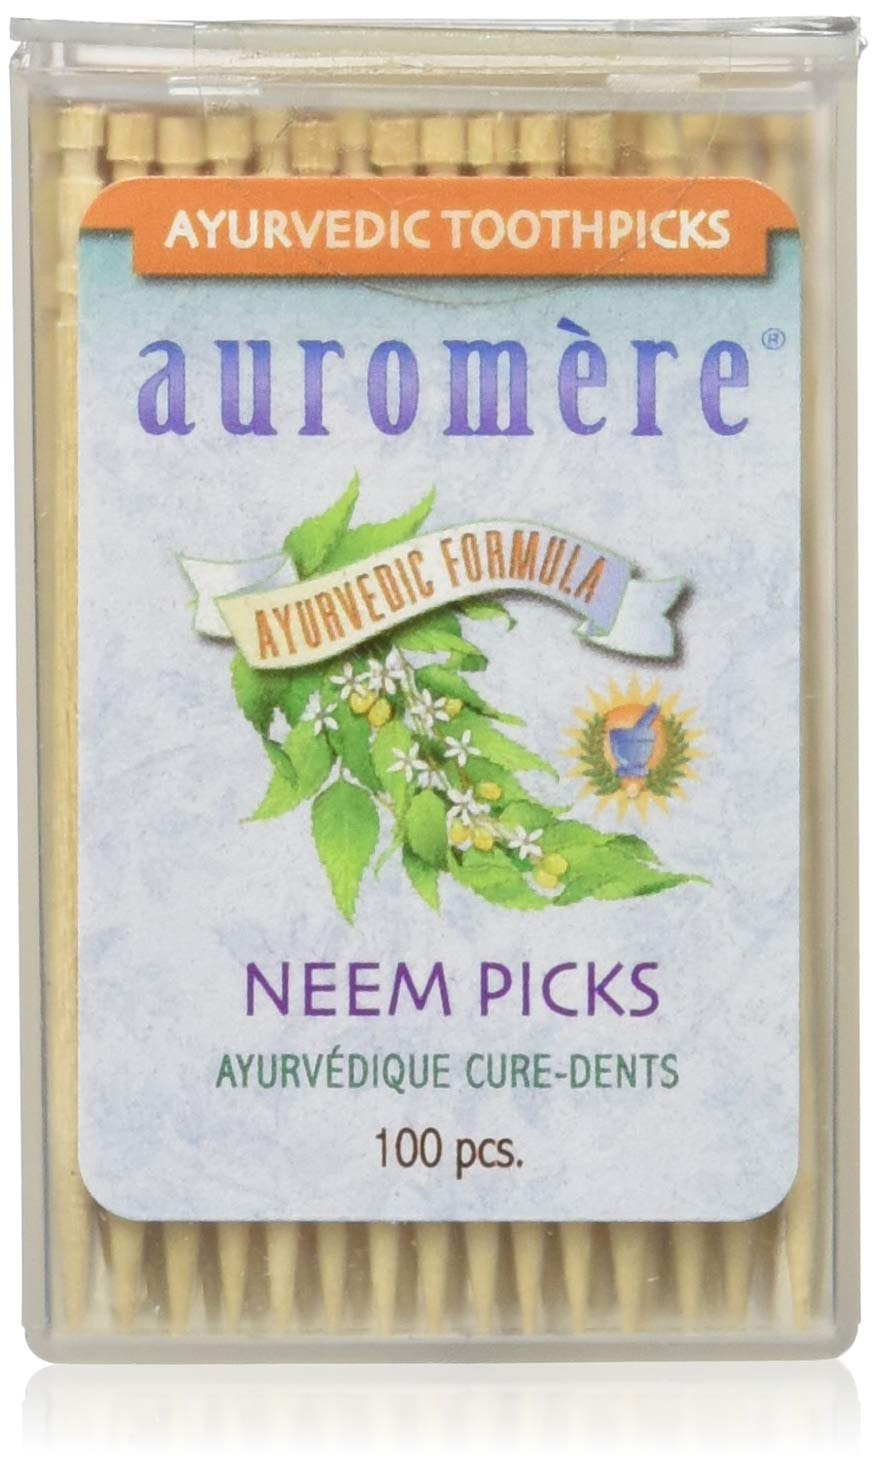 Ayurvedic Neem Toothpicks by Auromere - All Natural, with Neem and Vegan - 100ct (12 Pack)